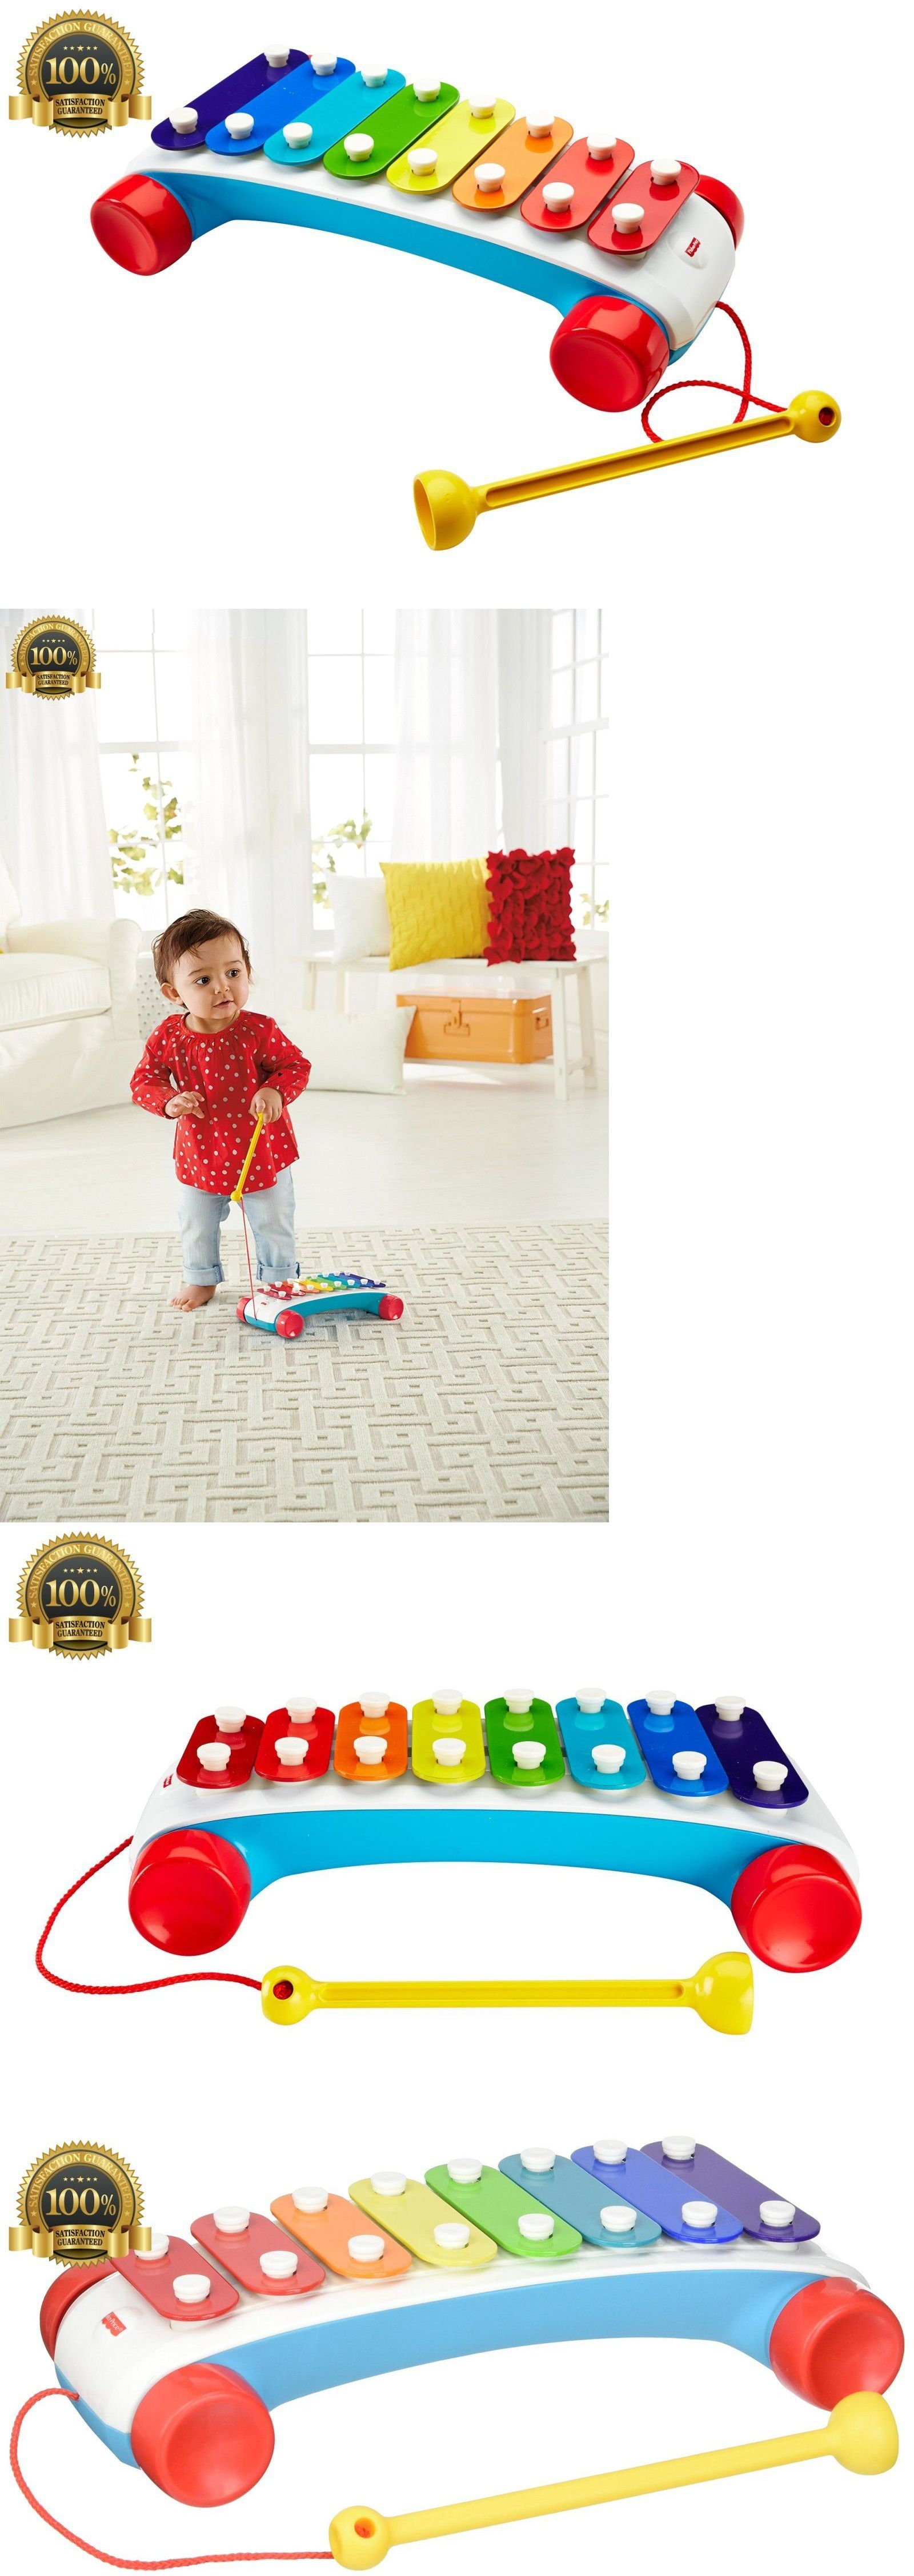 Toys for Baby 19068: New Fisher Price Classic Xylophone Instrument ...